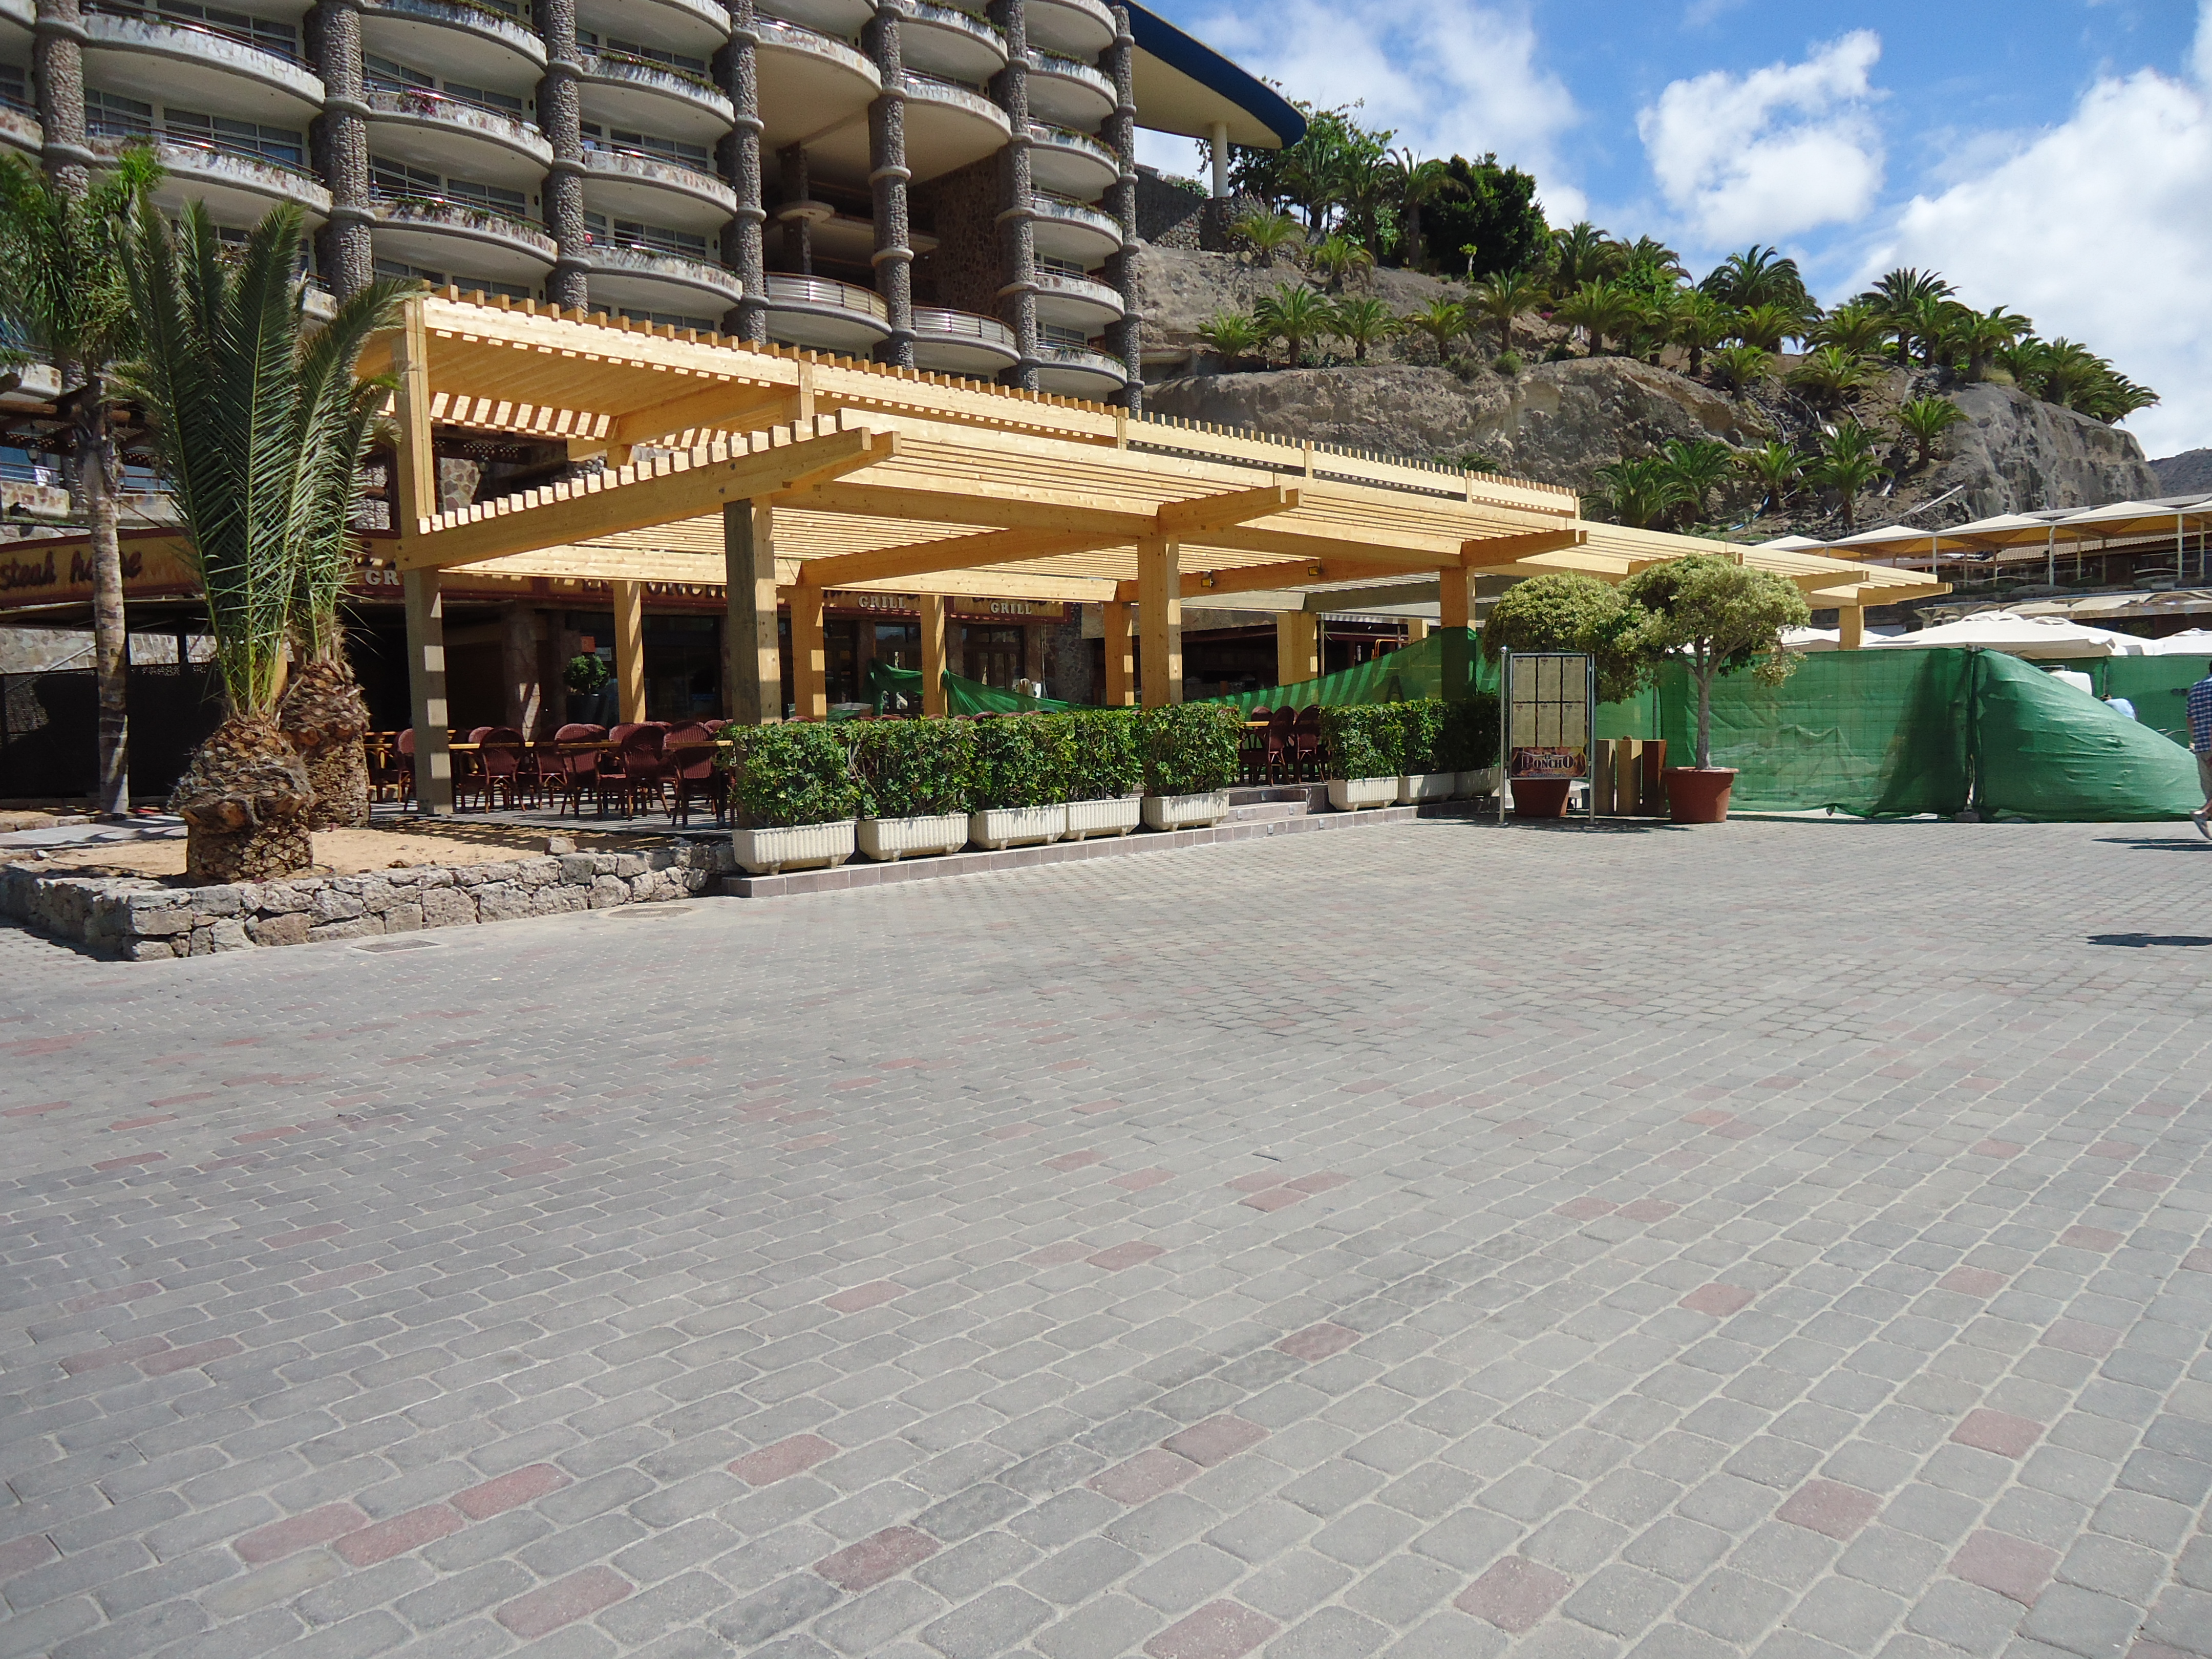 Restauranter Plaza